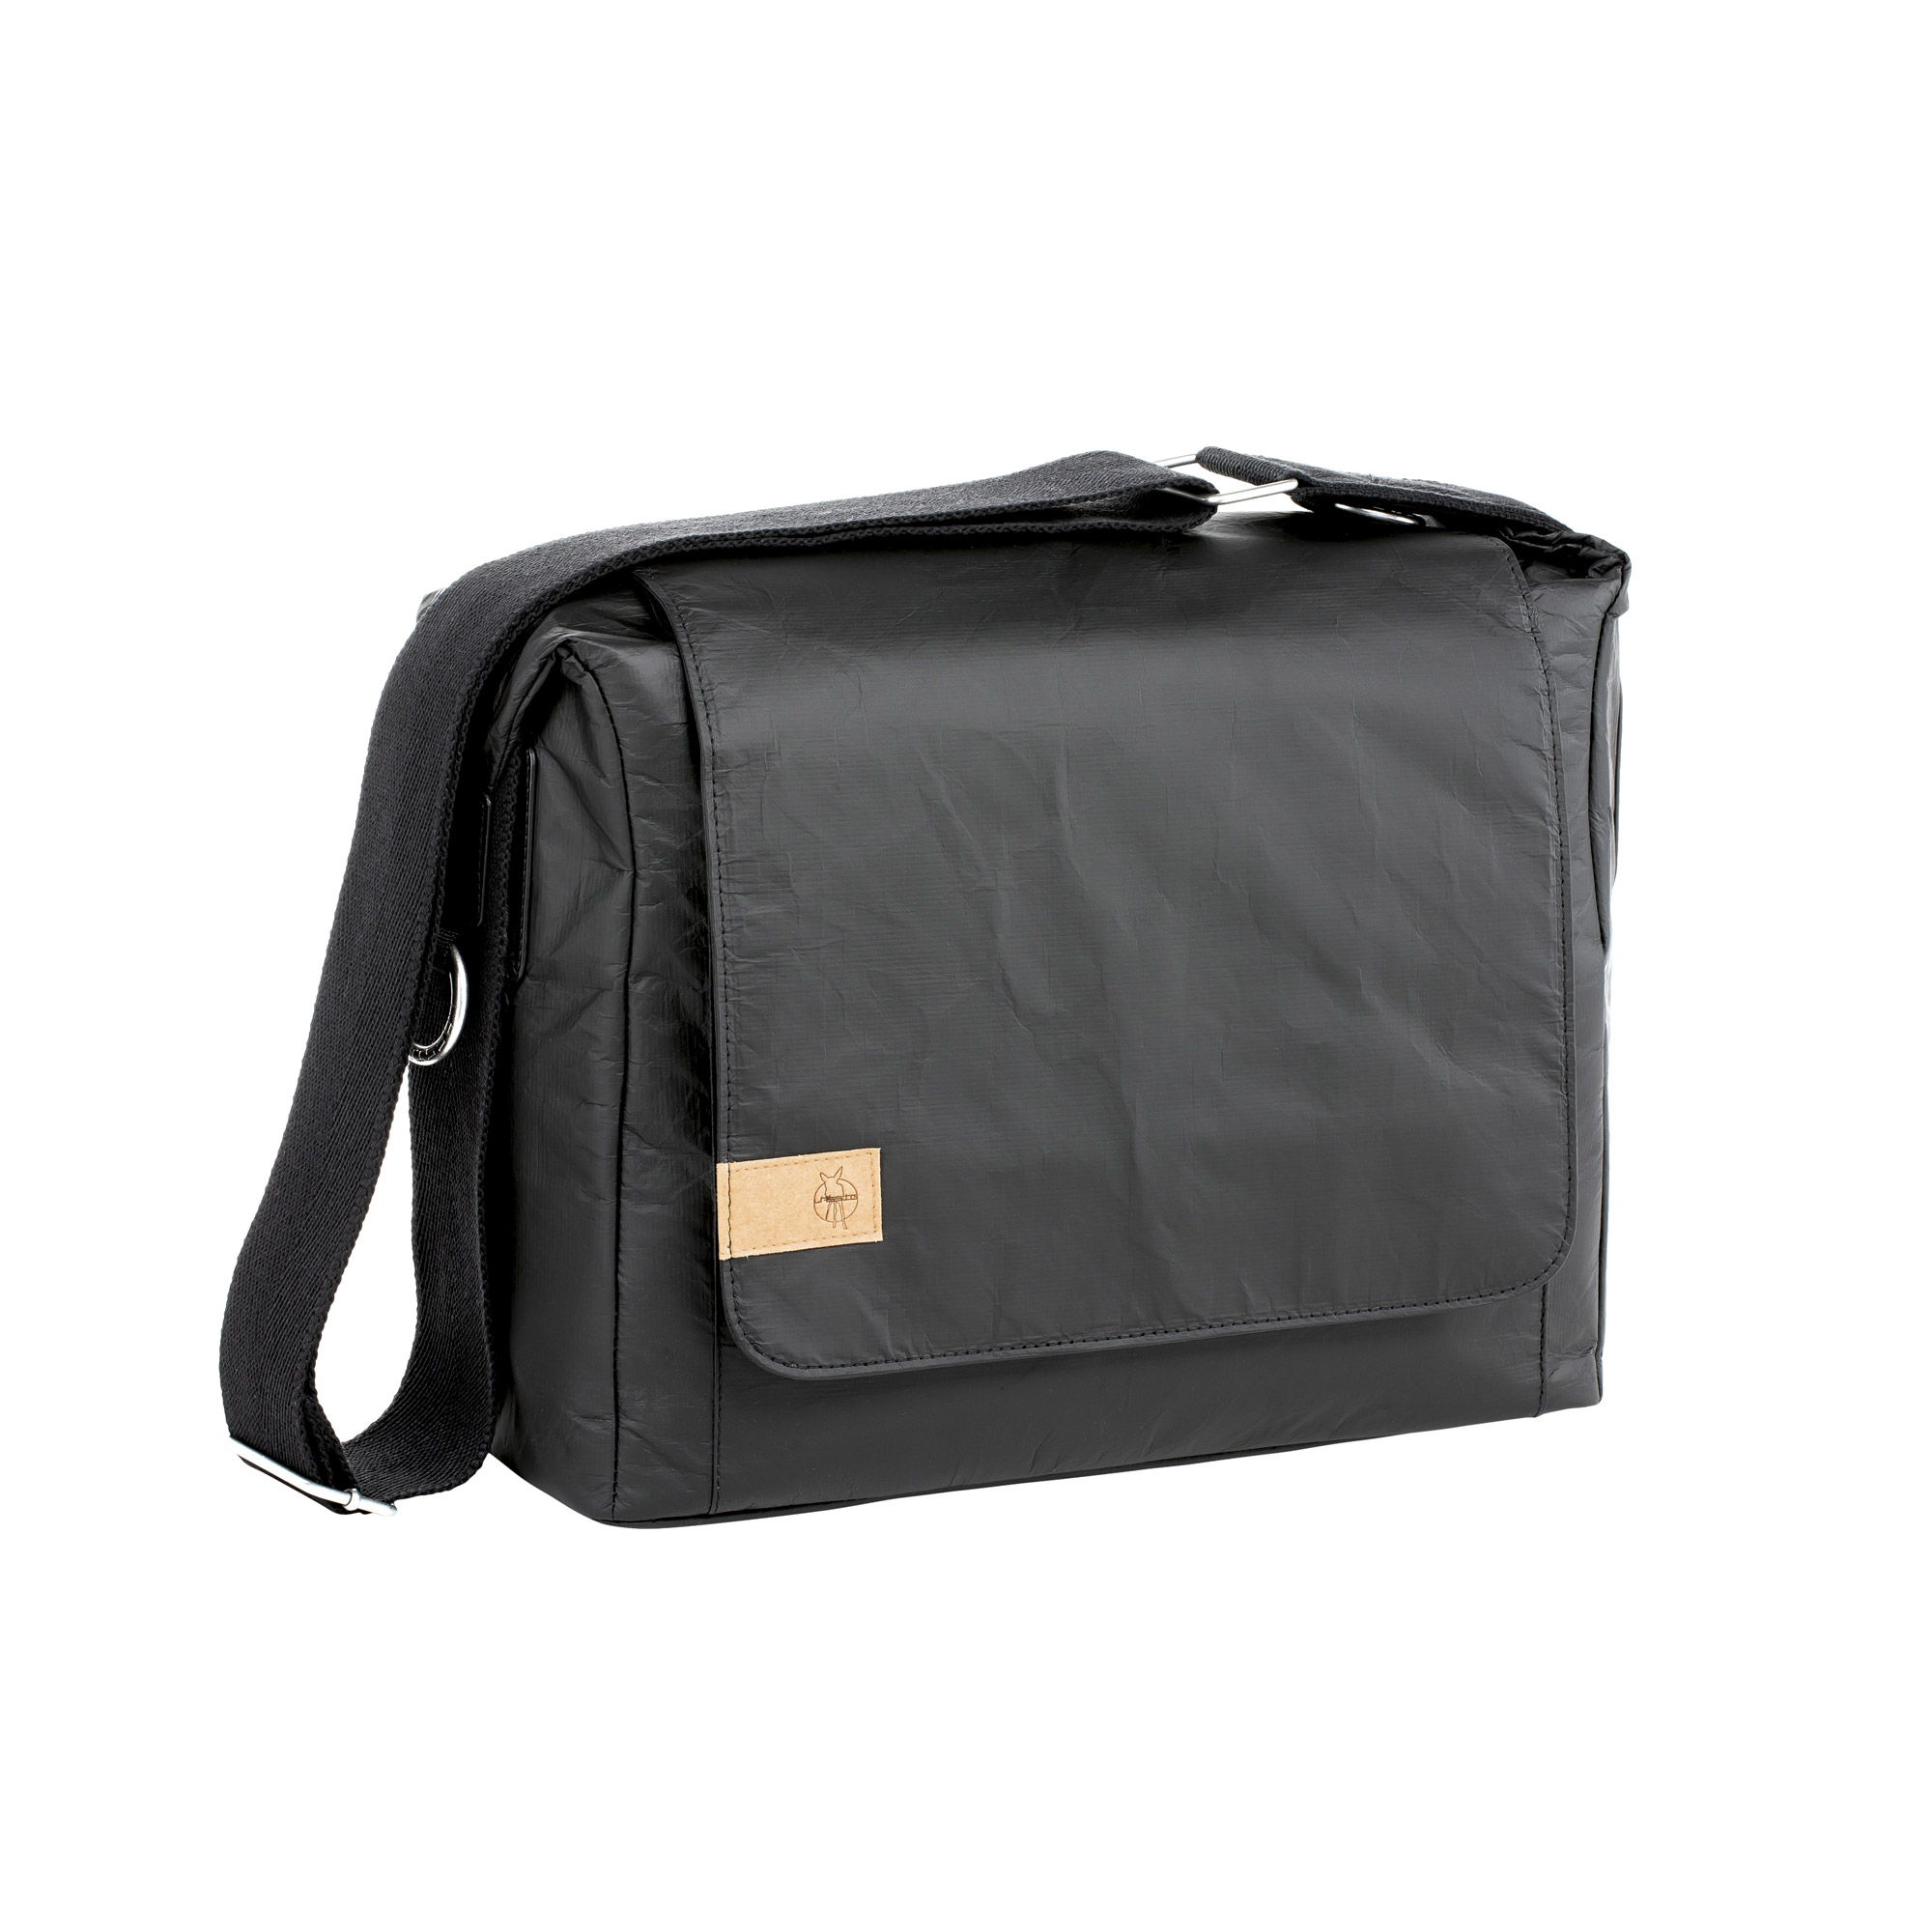 Sac Green Label messenger bag Tyvek Noir  de Lässig